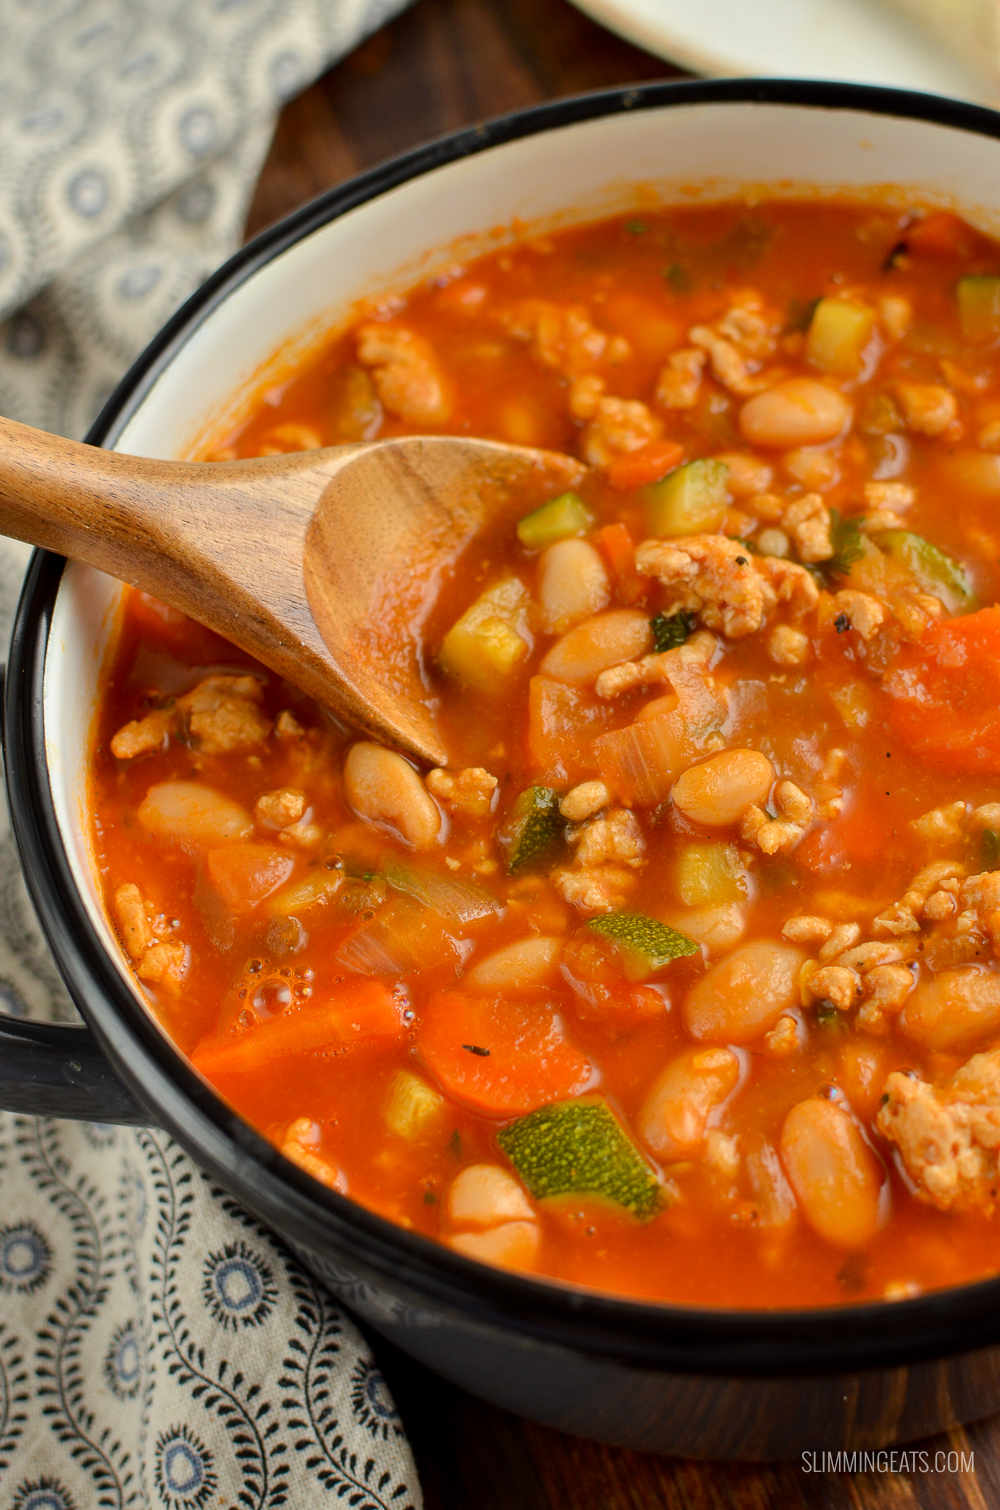 Syn Free ground turkey vegetable bean soup in grey saucepan with wooden spoon